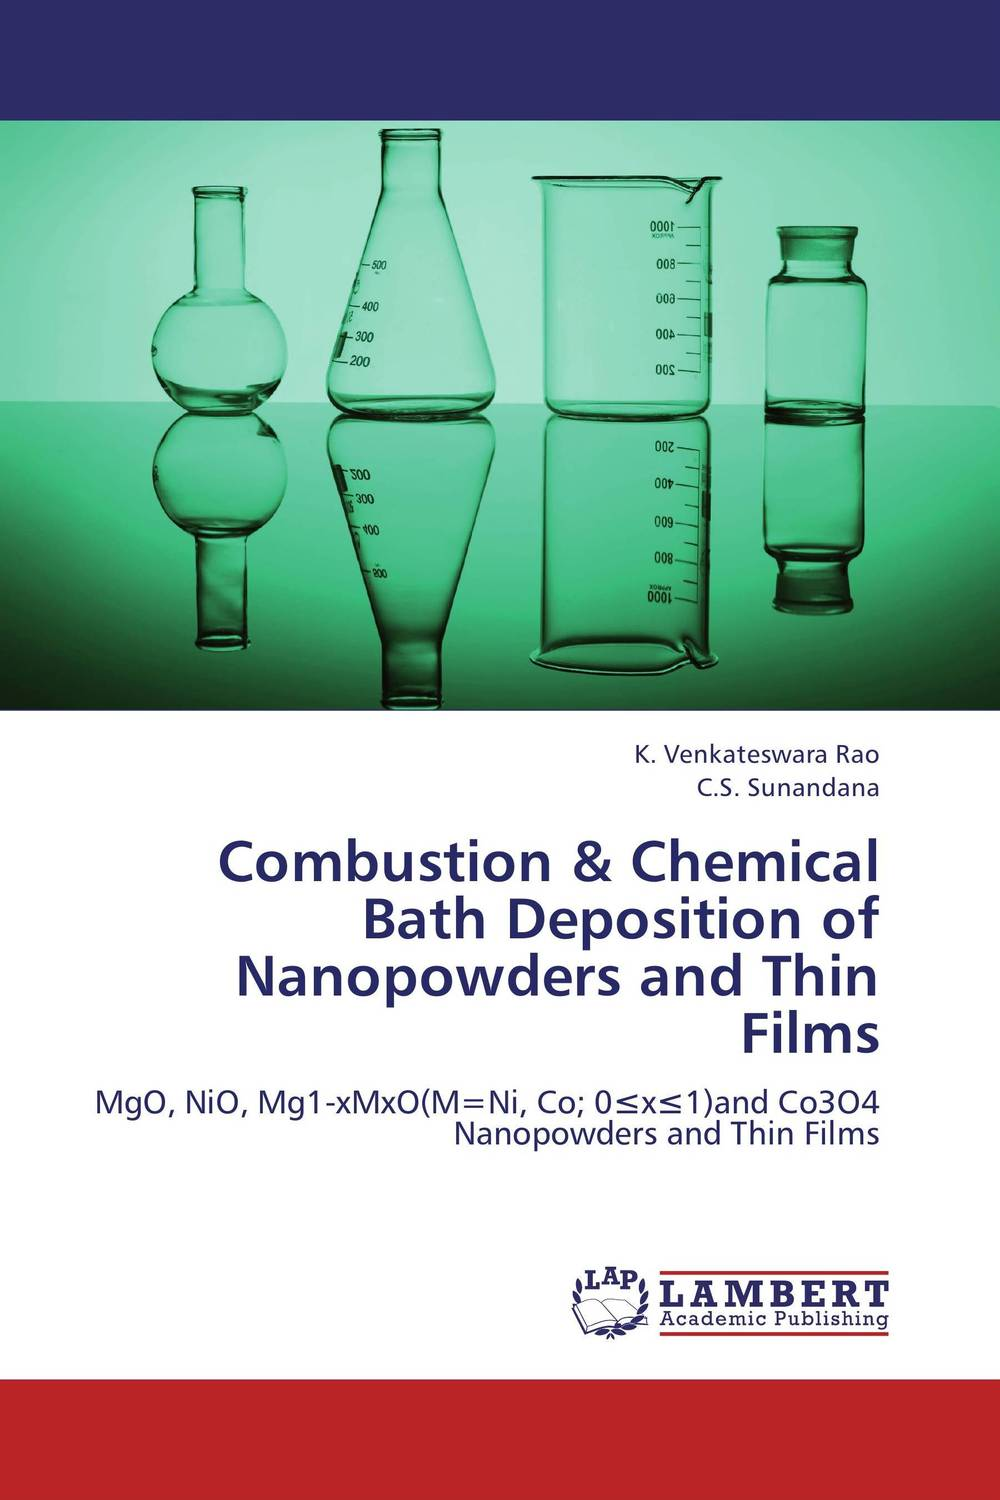 Combustion & Chemical Bath Deposition of Nanopowders and Thin  Films girjesh singh v ganesan and s b shrivastava structural studies of nano crystalline metal oxide films